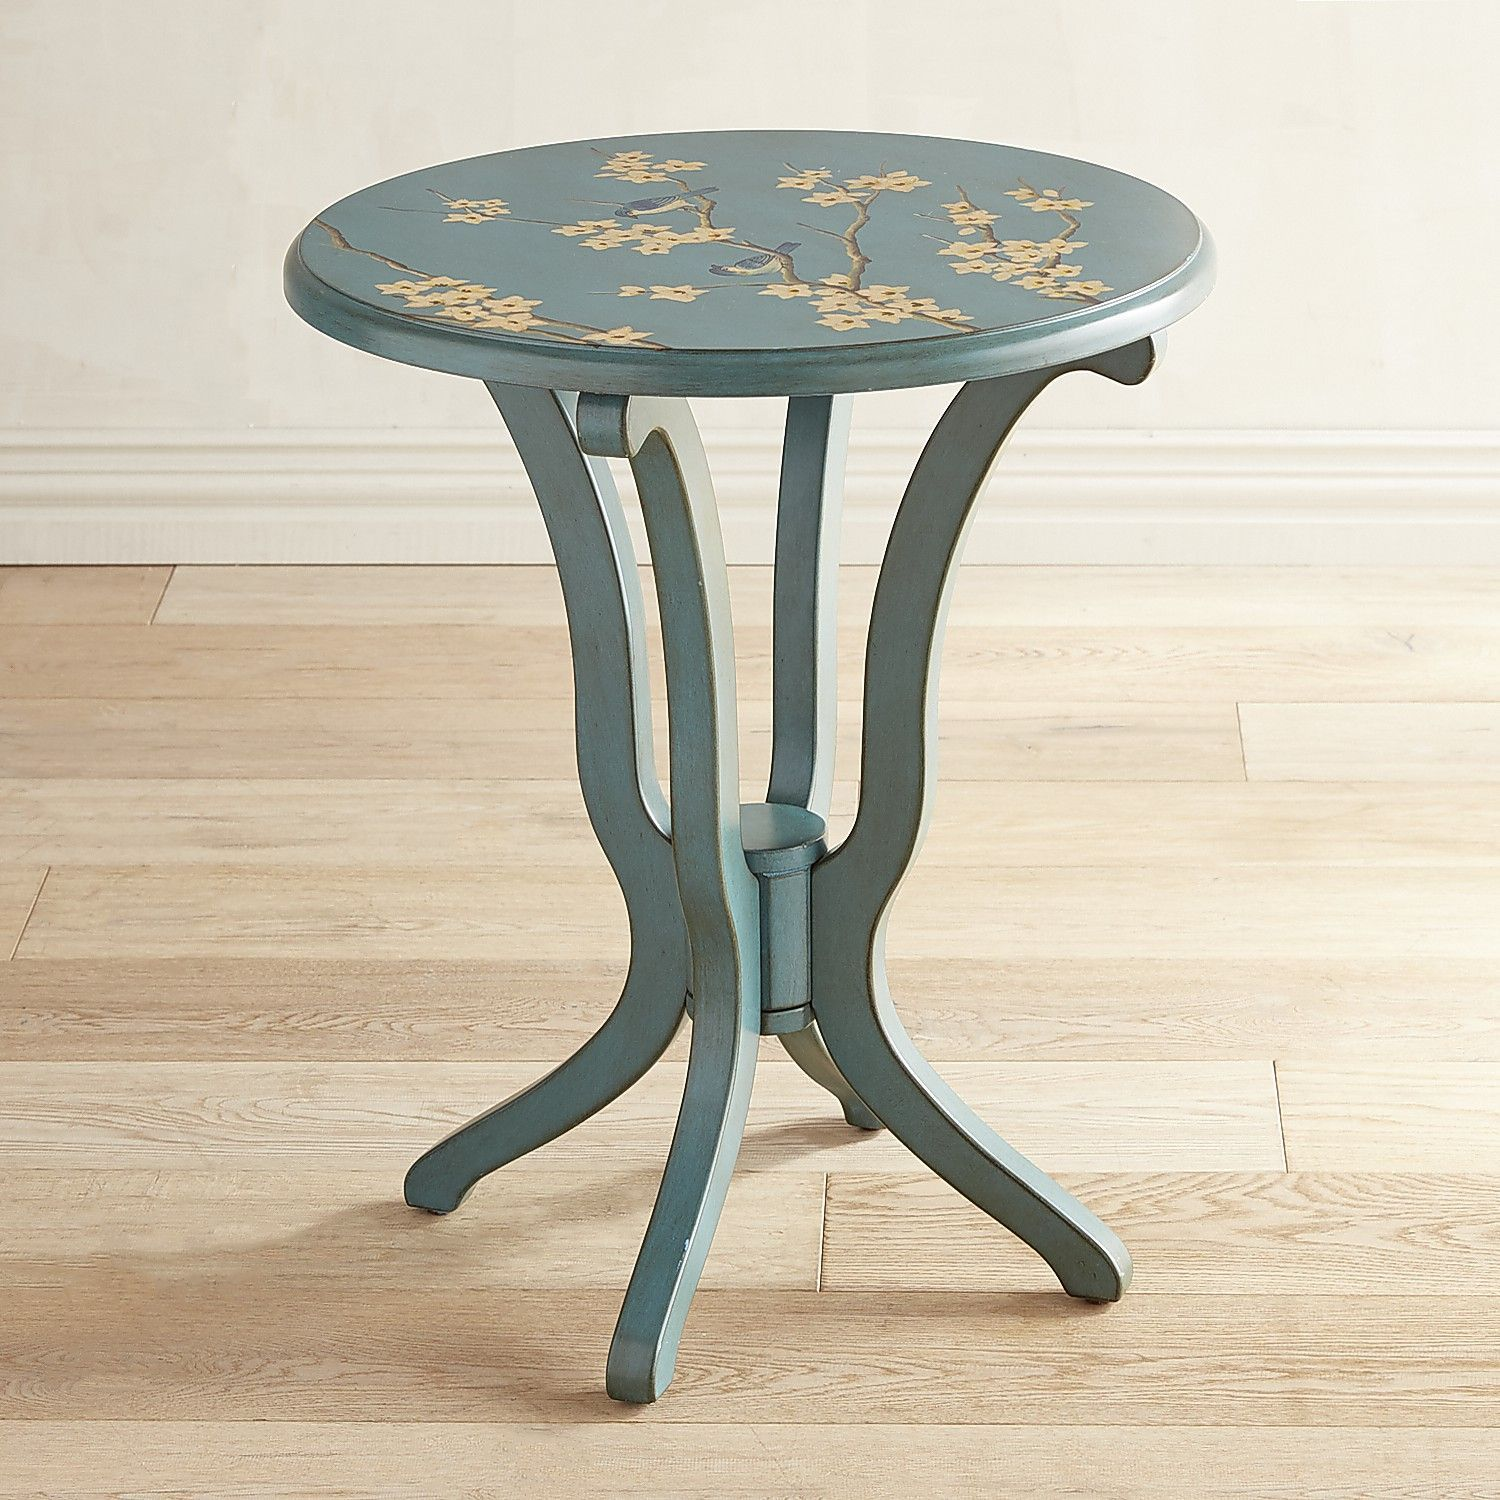 daffodil peach blossom blue accent table products metal blossoms and carpet tile edging strip perspex bedside counter height pub sofa small with drawers drink cooler modern brass